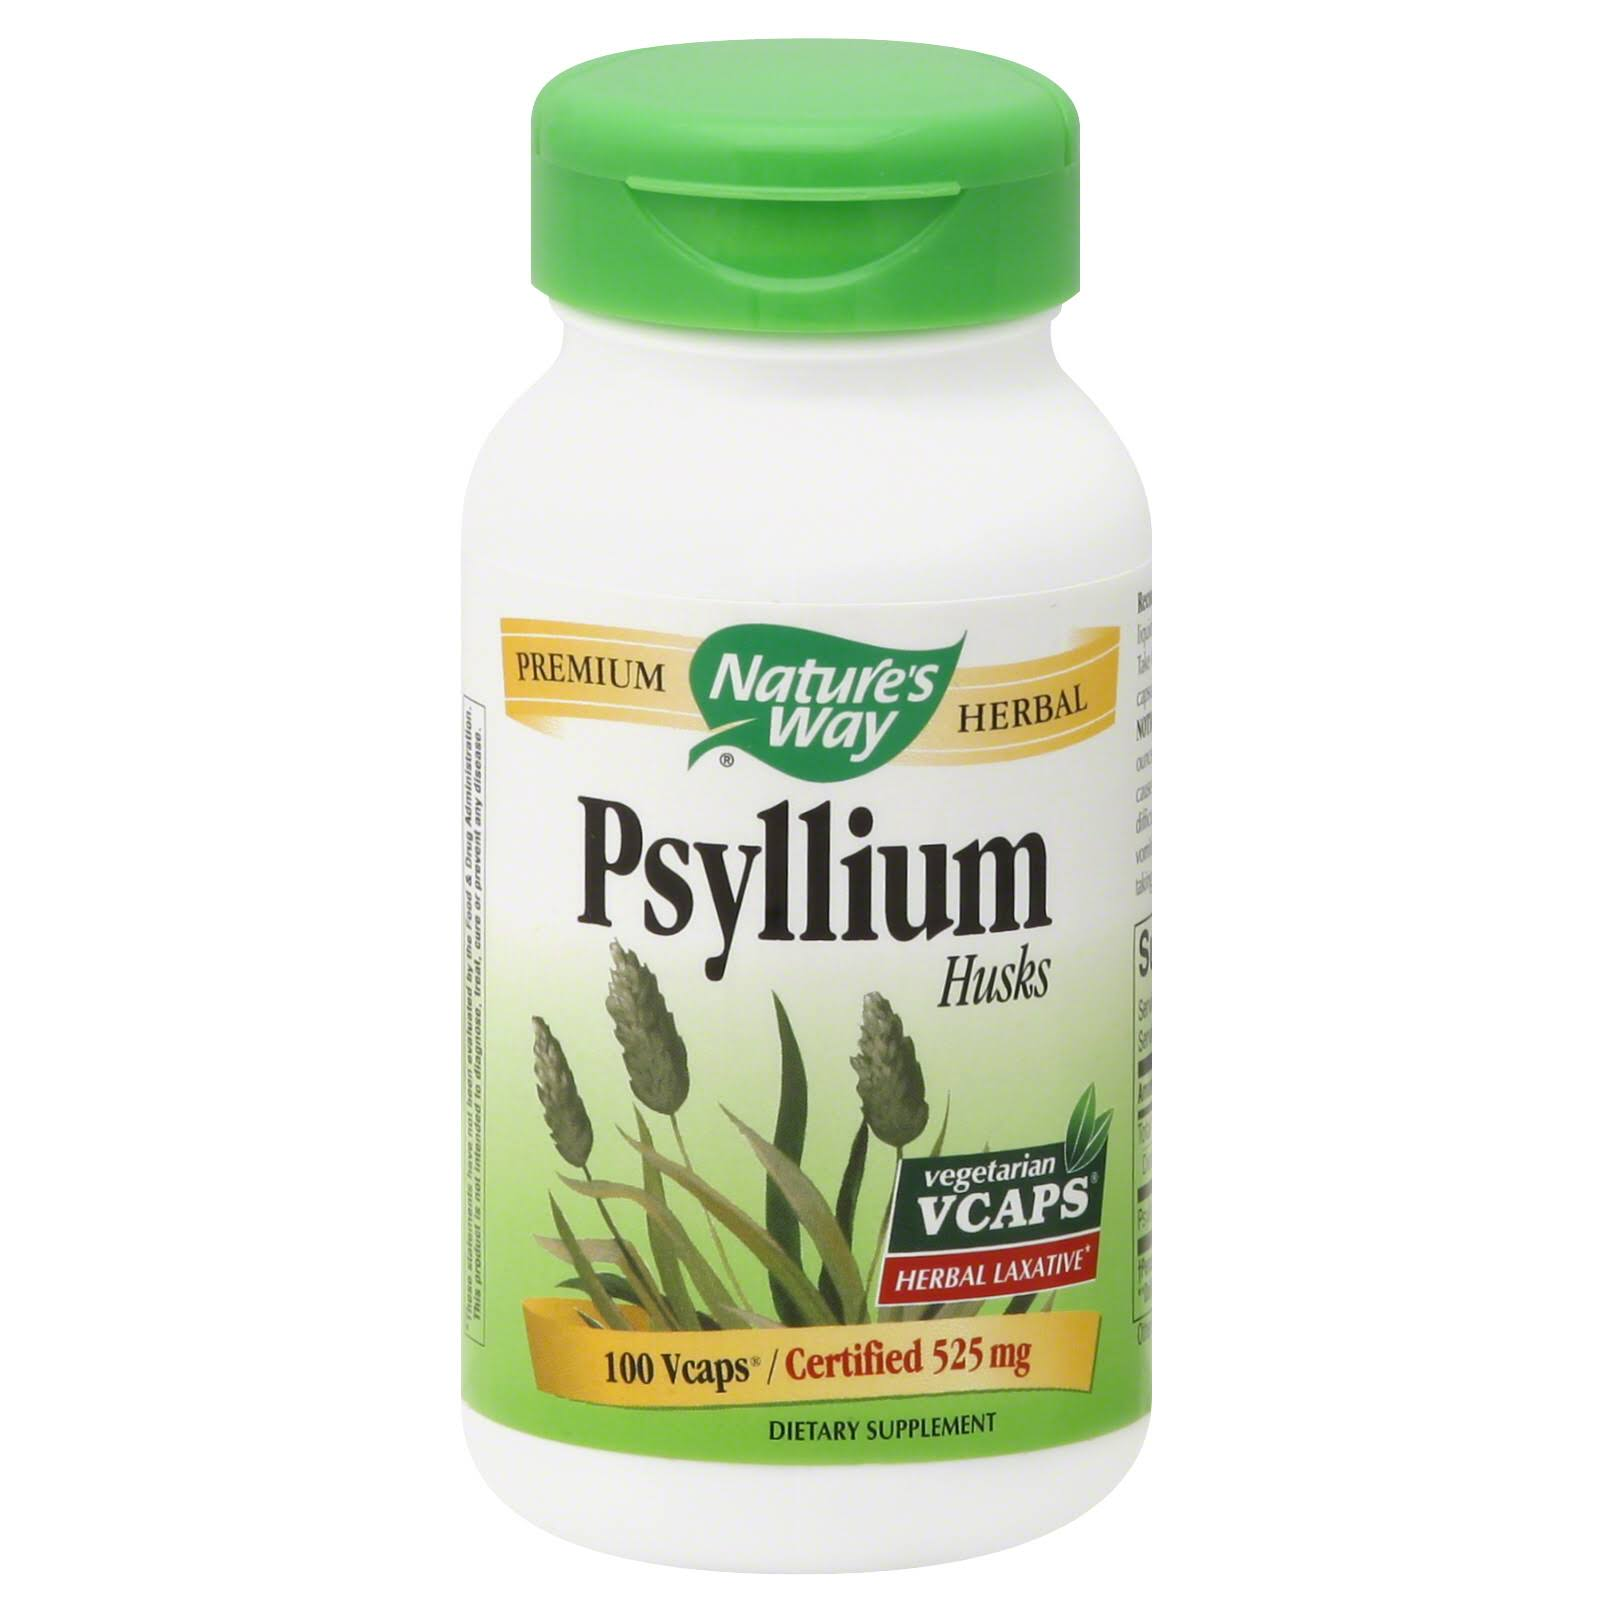 Nature's Way Psyllium Husks Supplement - 100 Capsules